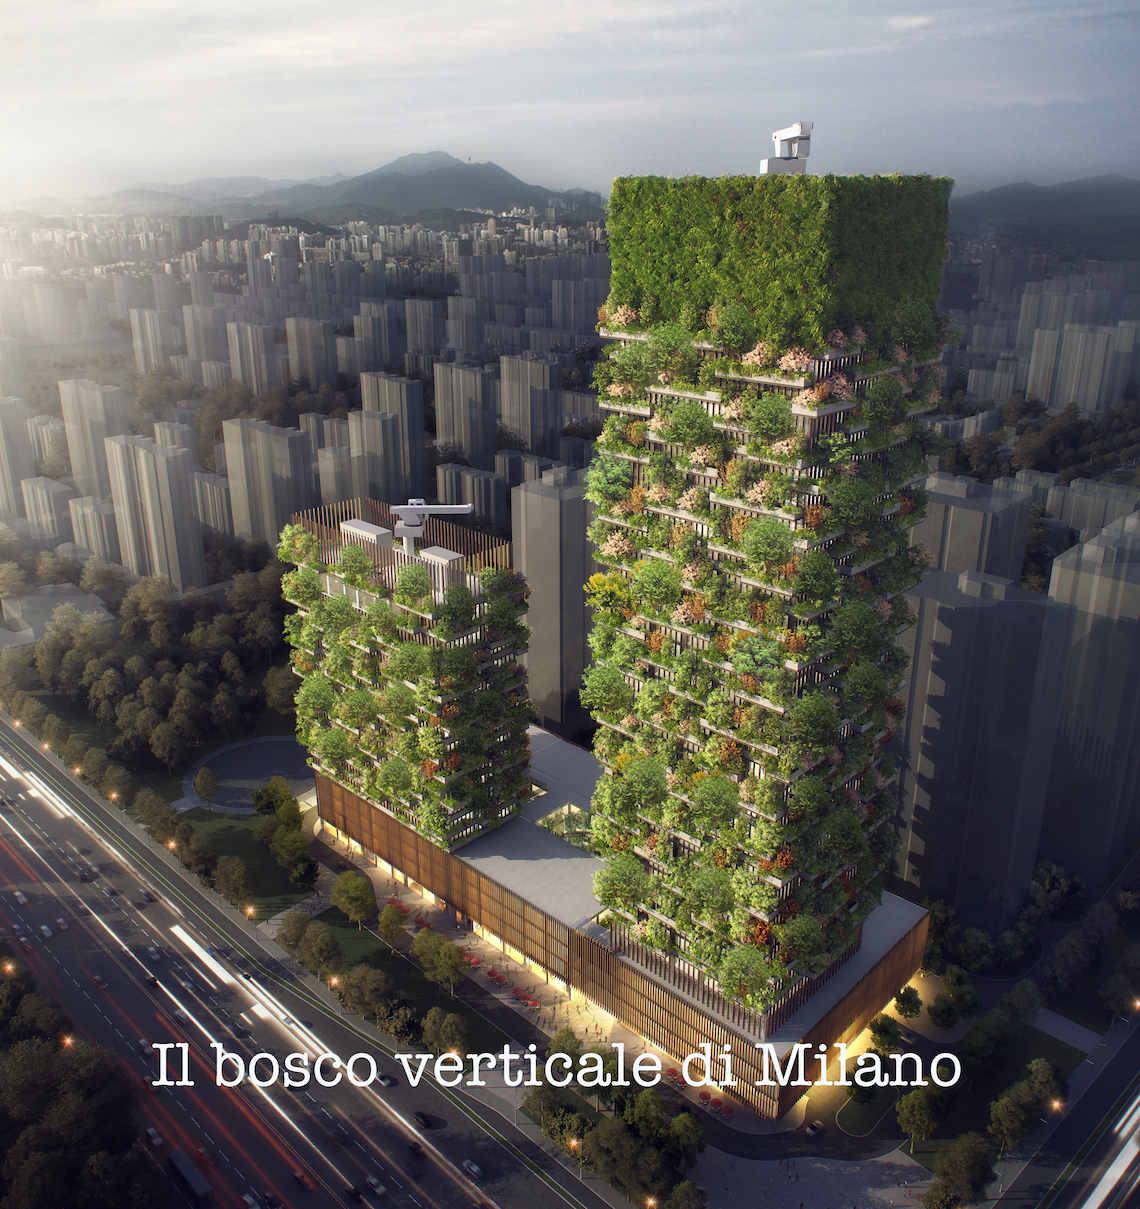 Il bosco verticale, ottimo esempio di marketing narrativo territoriale